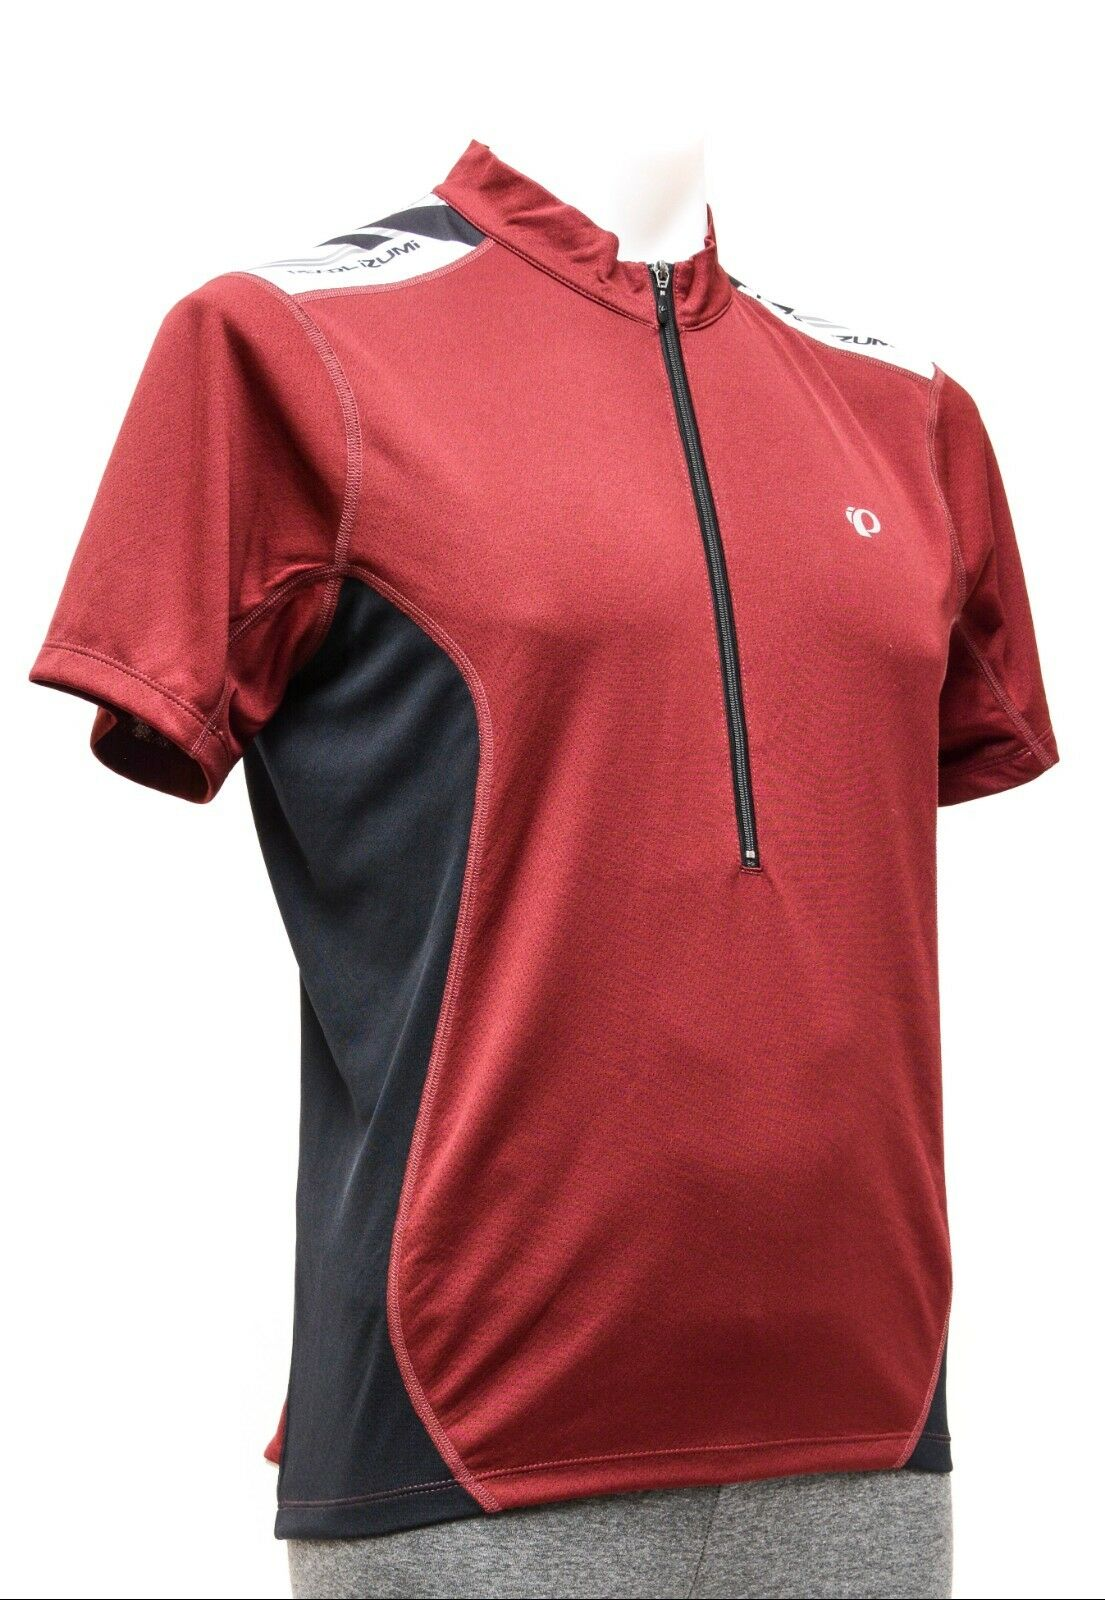 373e7096b Pearl Izumi 2018 Men s Quest Short Sleeve Cycling Jersey - 11121407 ...